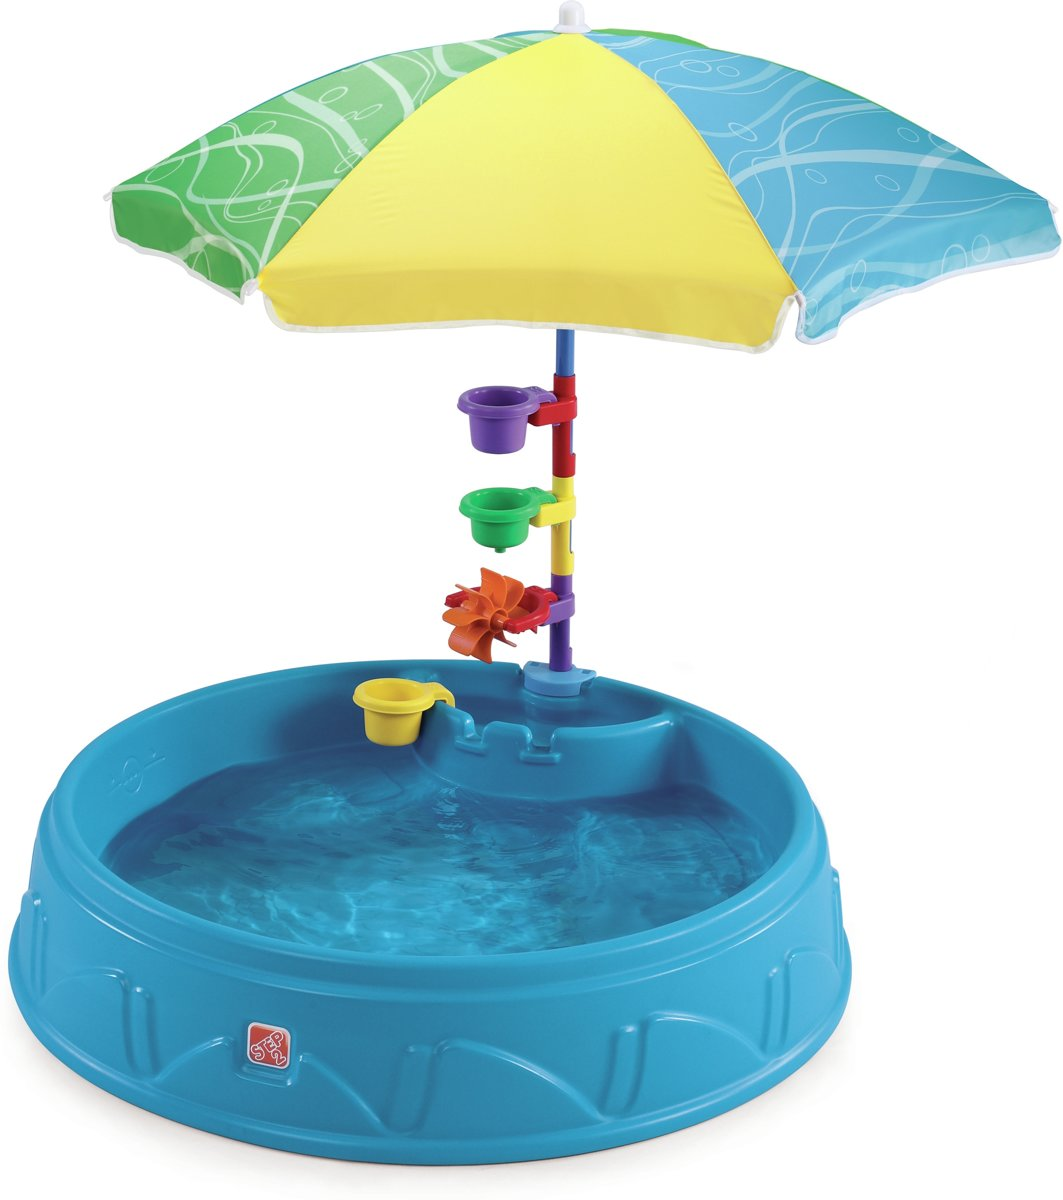 Step2 Play and Shade - Zwembad met Parasol en Accessoires